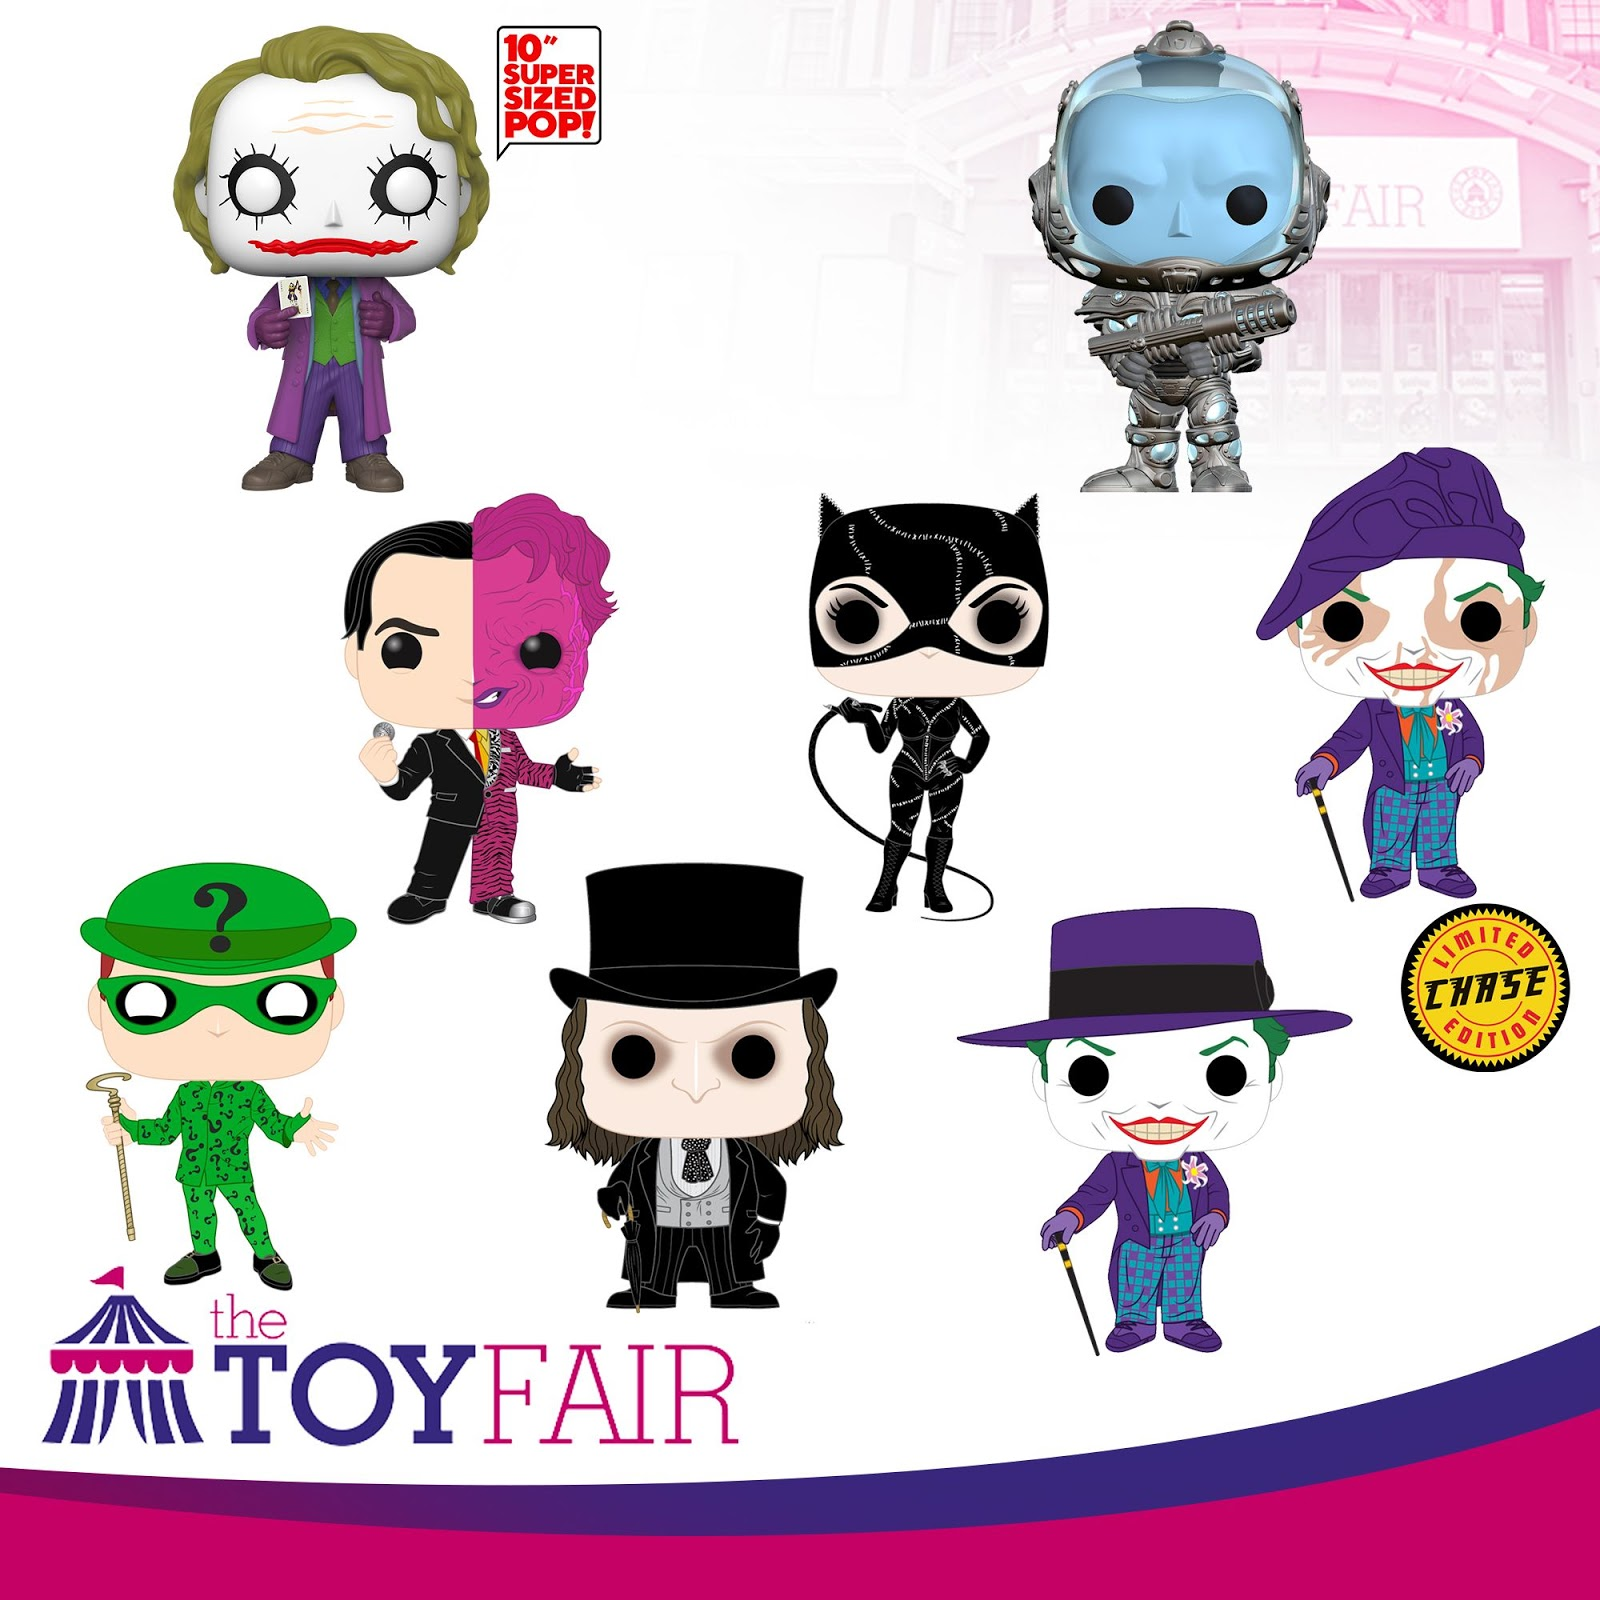 The Blot Says Dc Comics Movie Batman Villains Pop Vinyl Figures By Funko